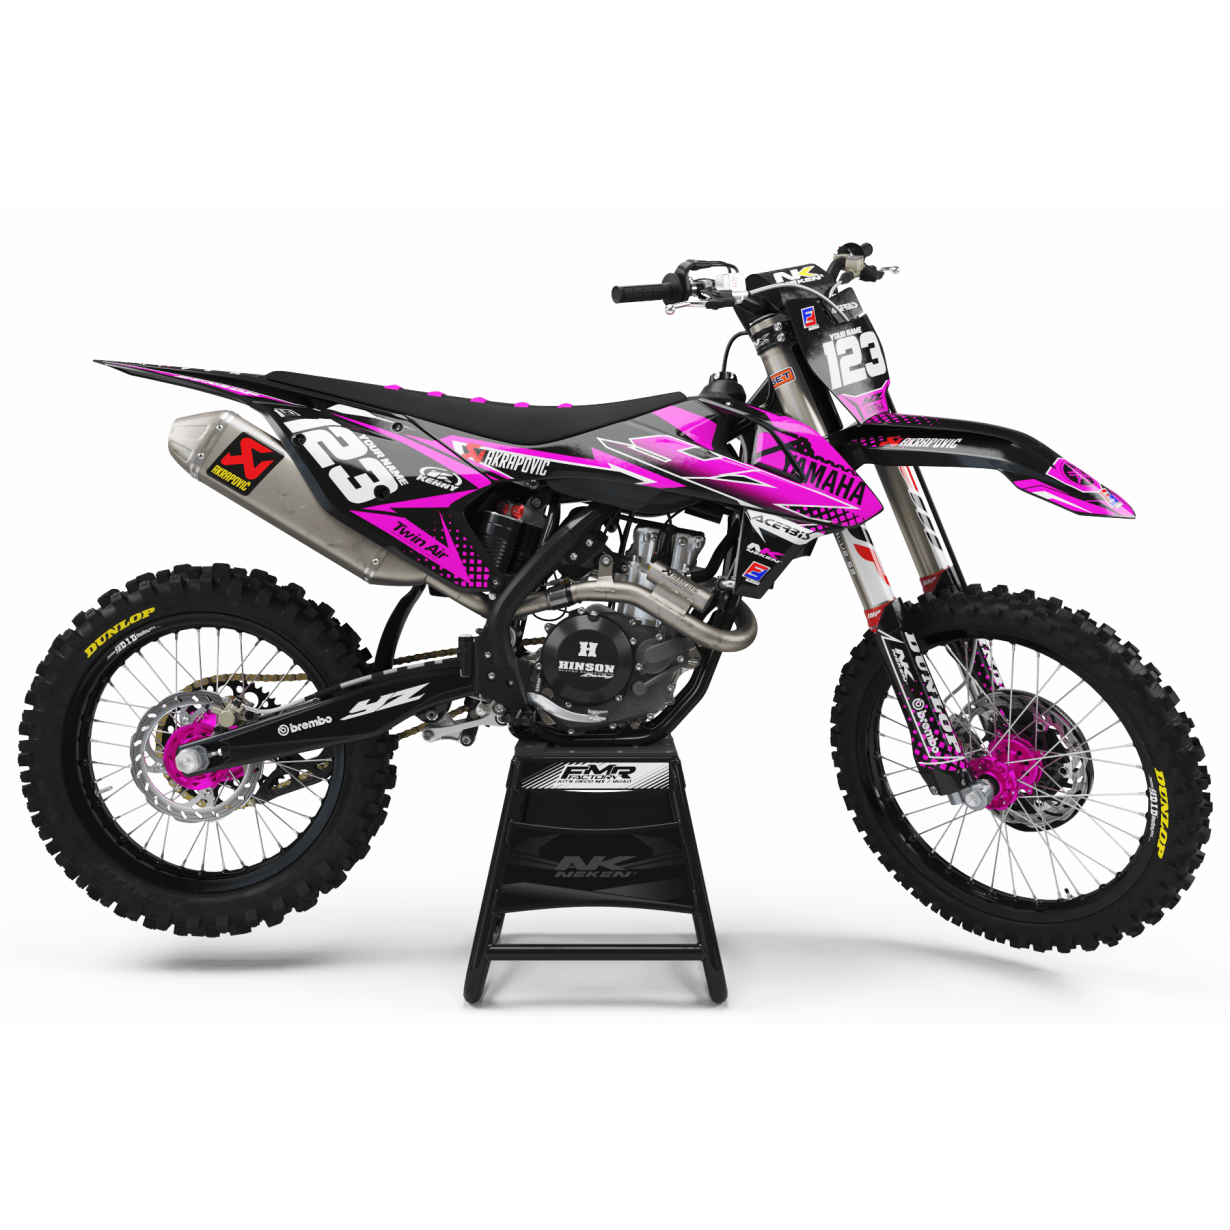 Kit déco Perso FACTORY yamaha ENERGY MA33E3 rose